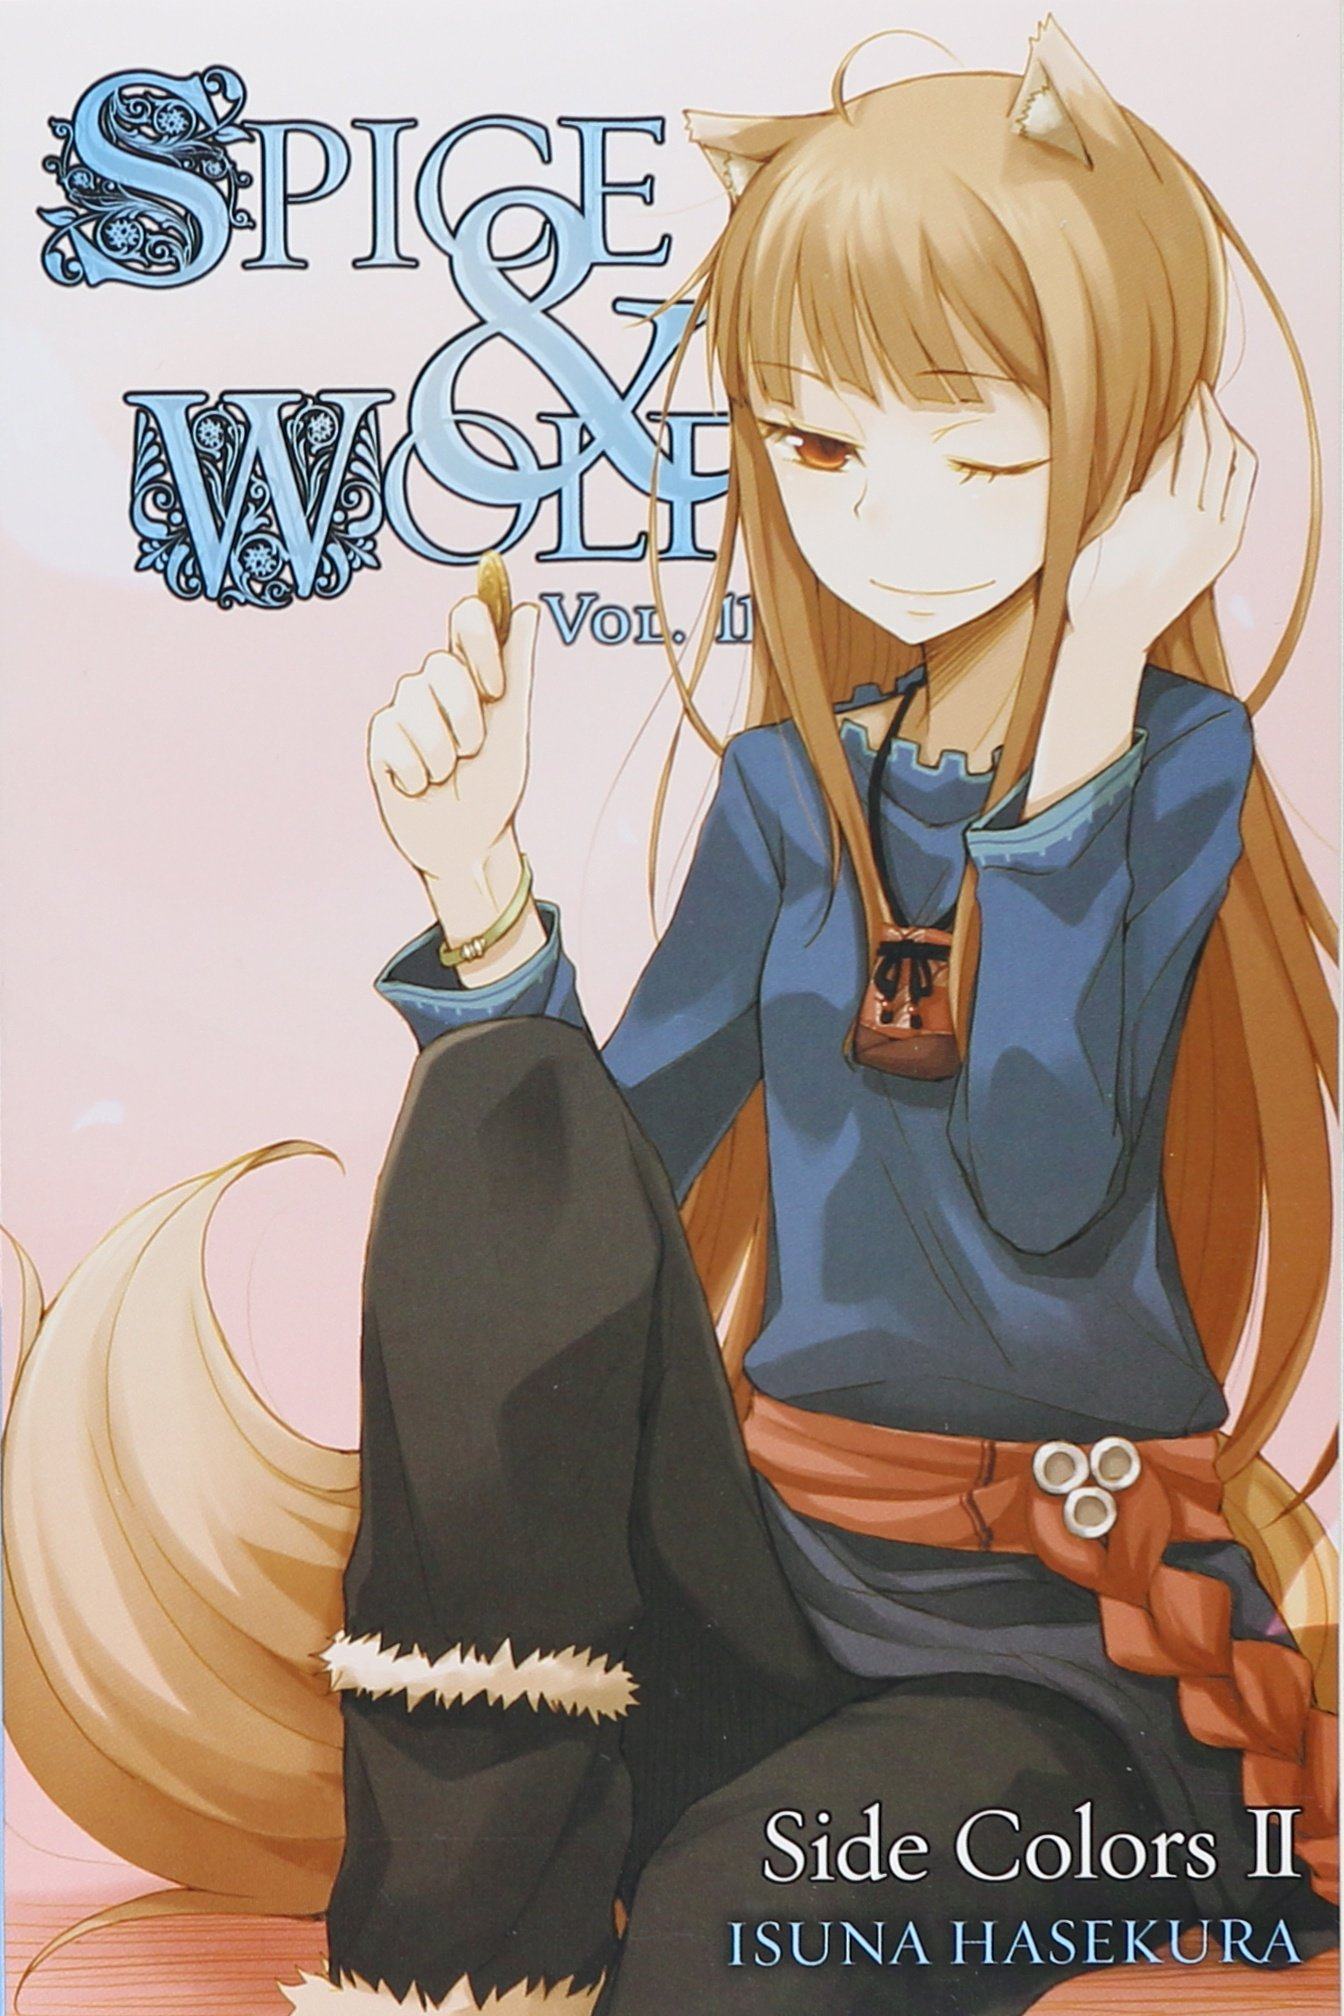 spice-and-wolf-vol-11-light-novel-side-colors-ii